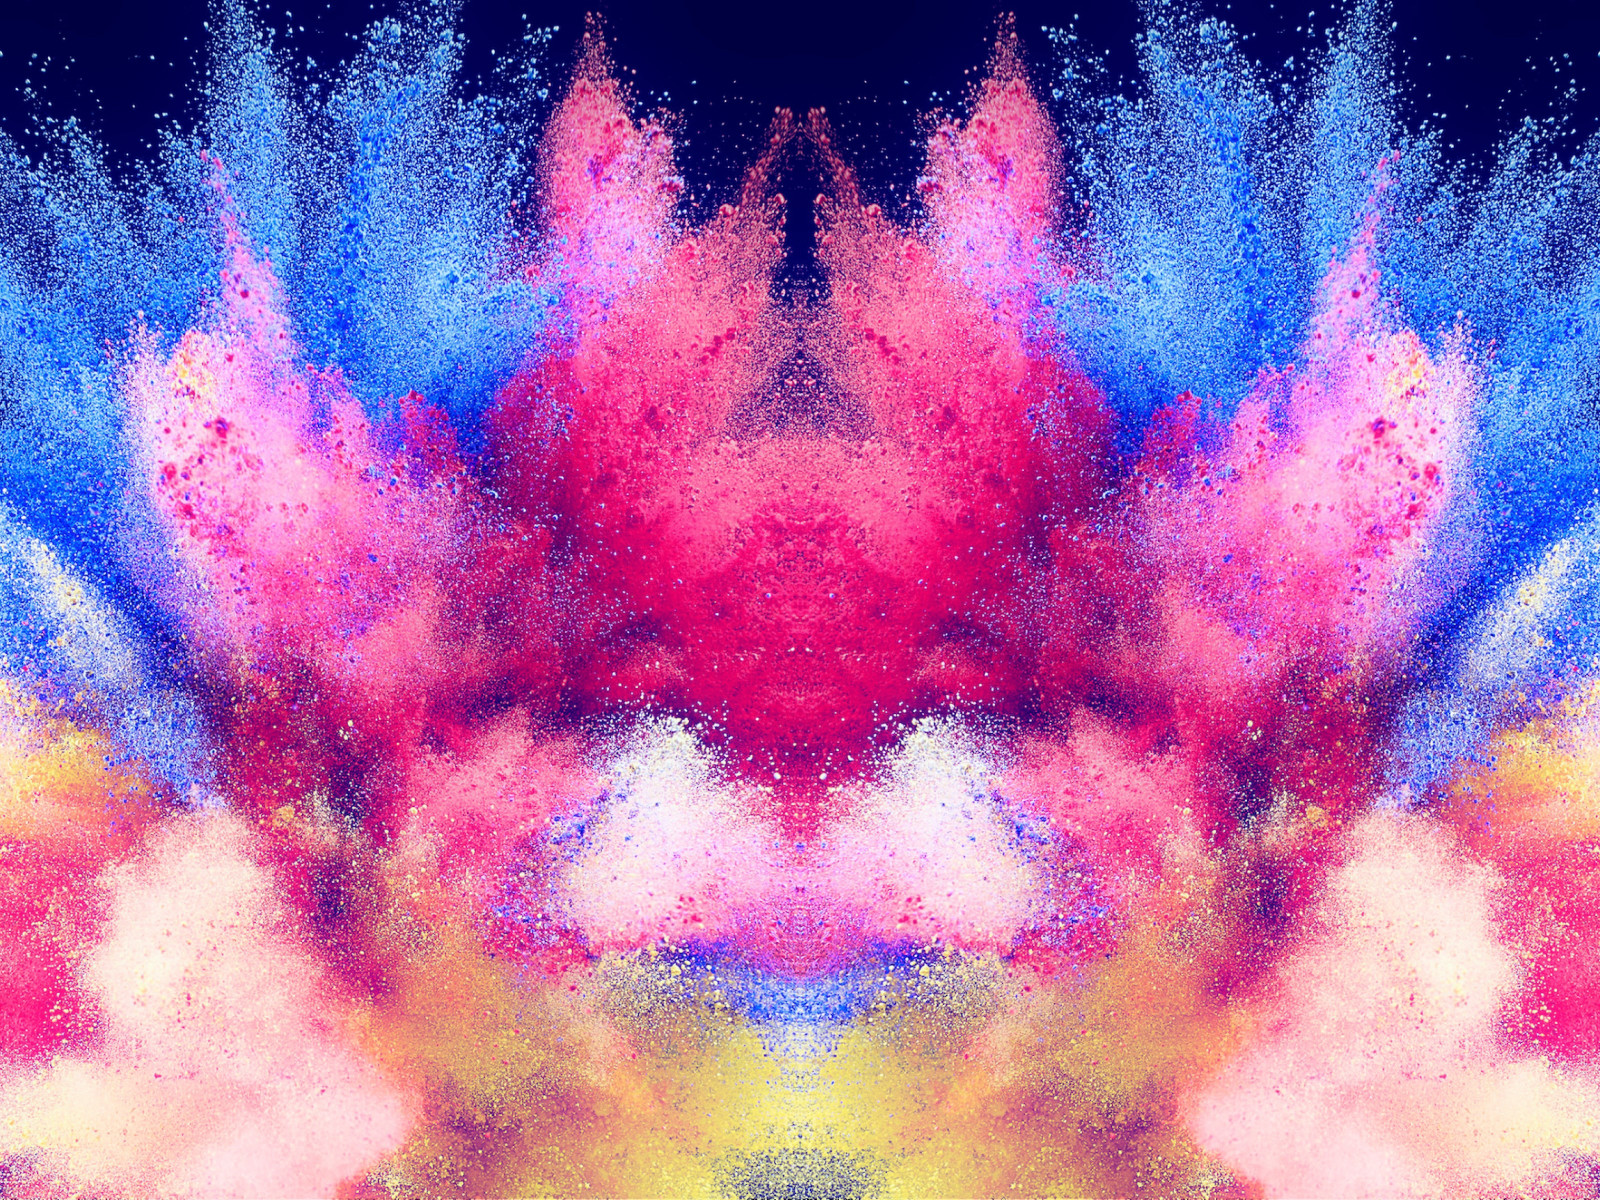 Abstract illustration: Powder colors wallpaper 1600x1200